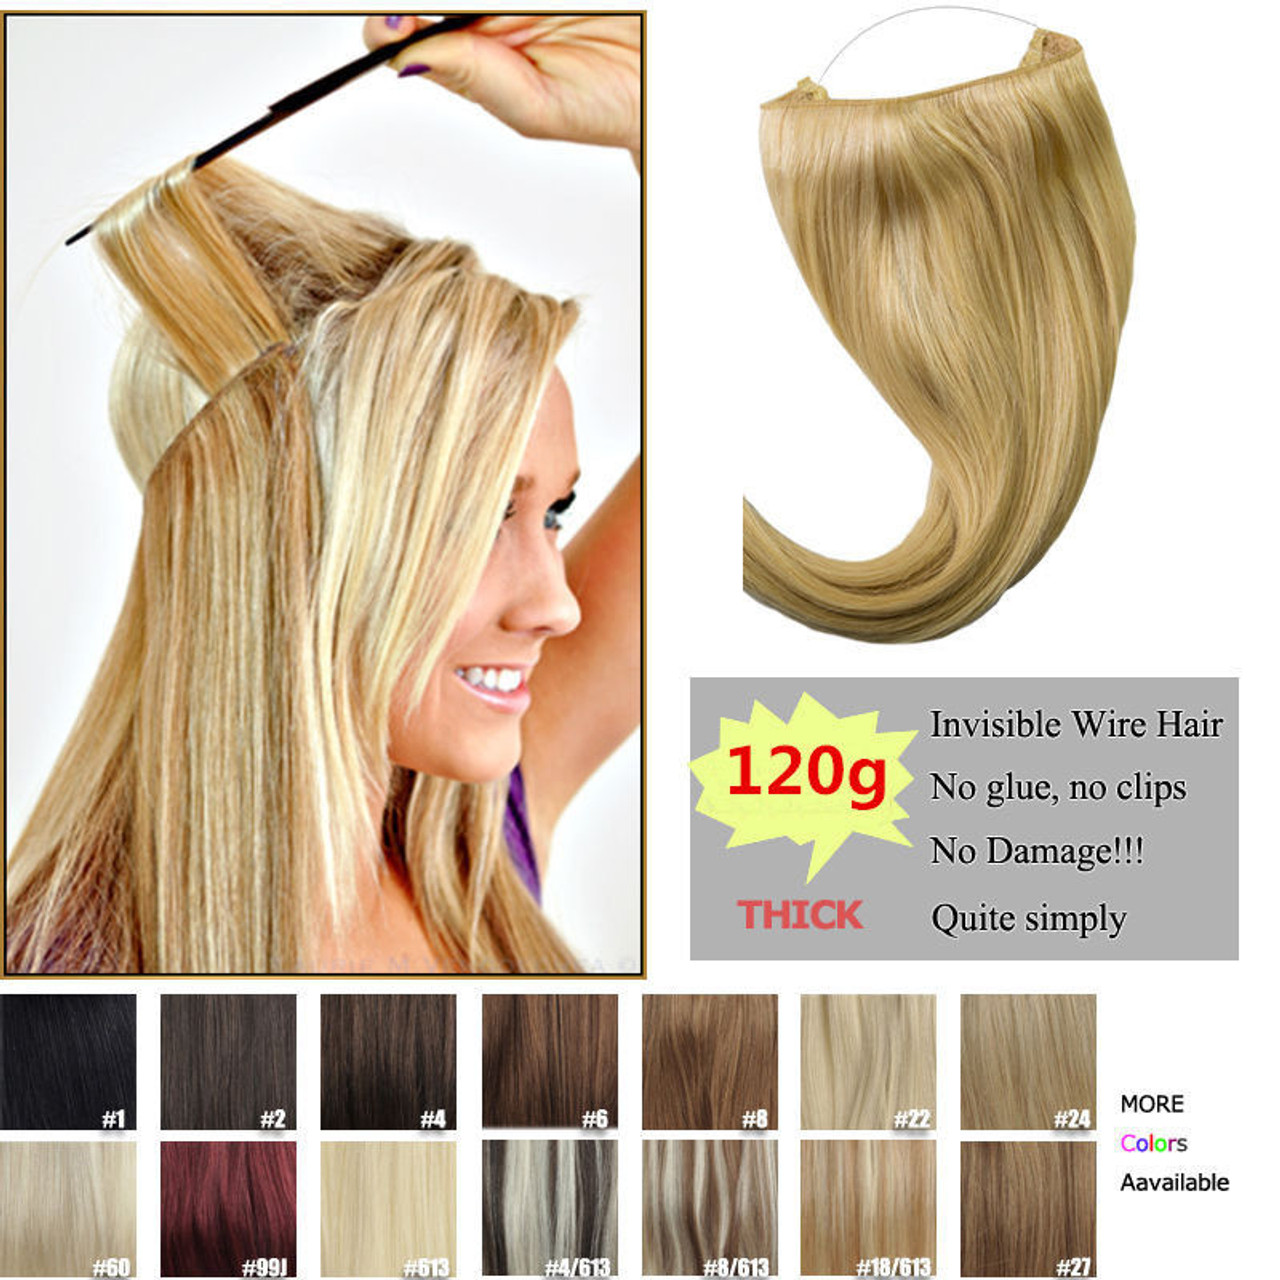 Remeehi 120g thick human remy secret invisible